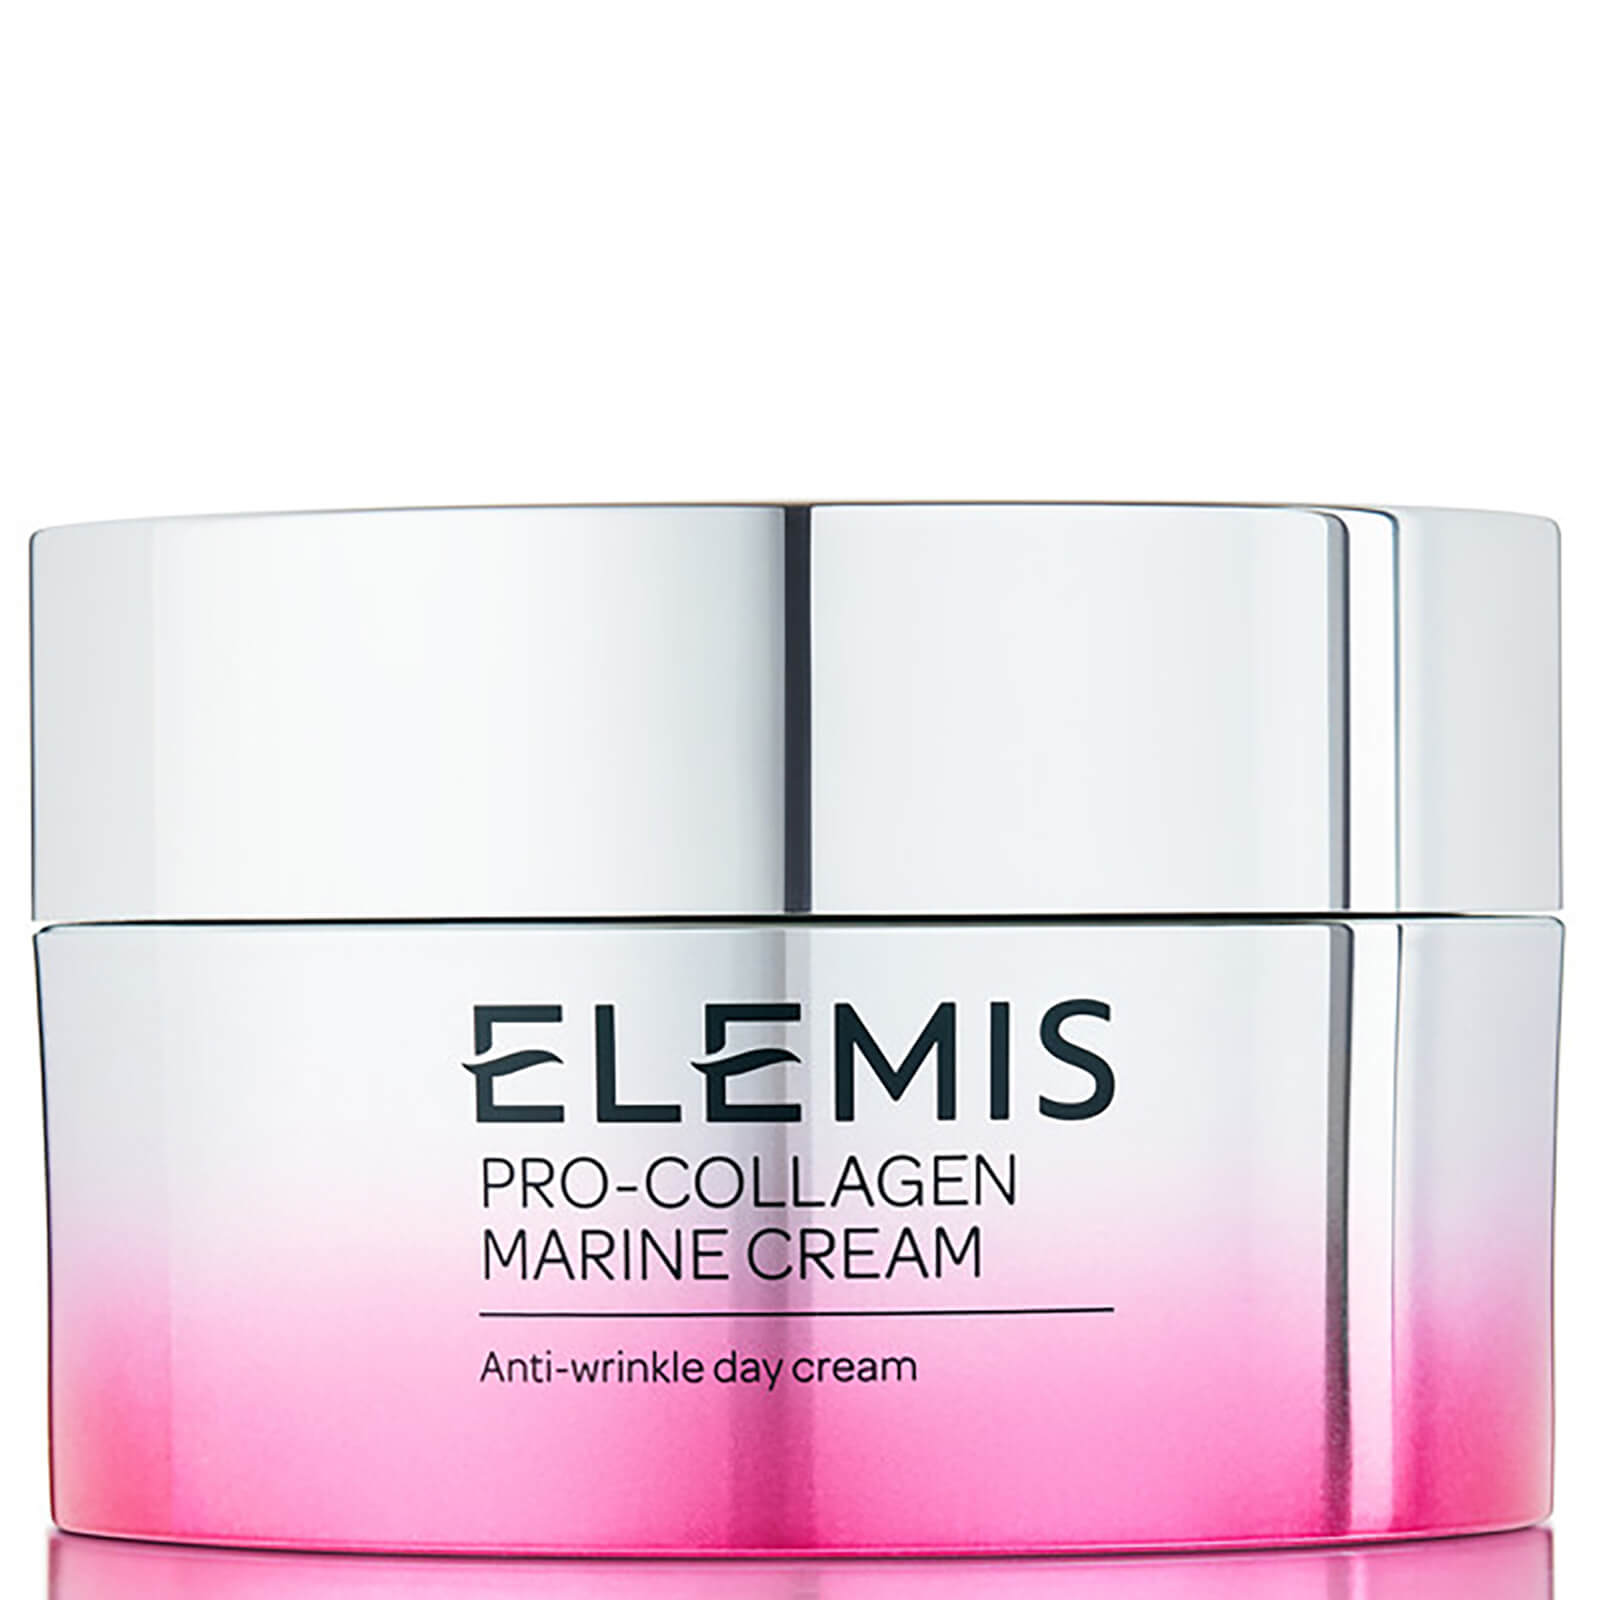 Elemis Pro-Collagen Marine Cream Supersize 100ml - Limited Edition